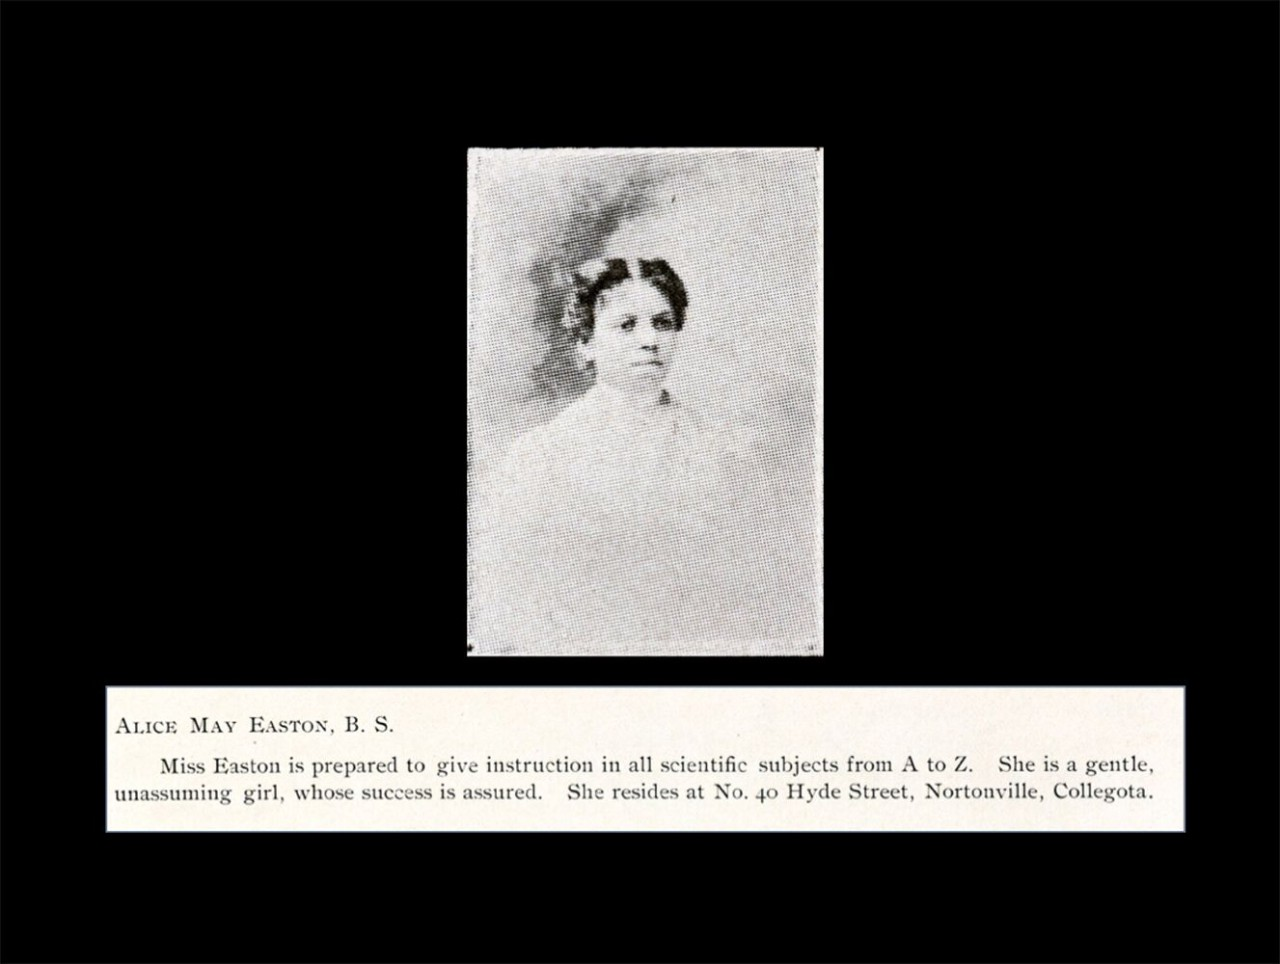 Black and white photo believed to be of Alice May Easton